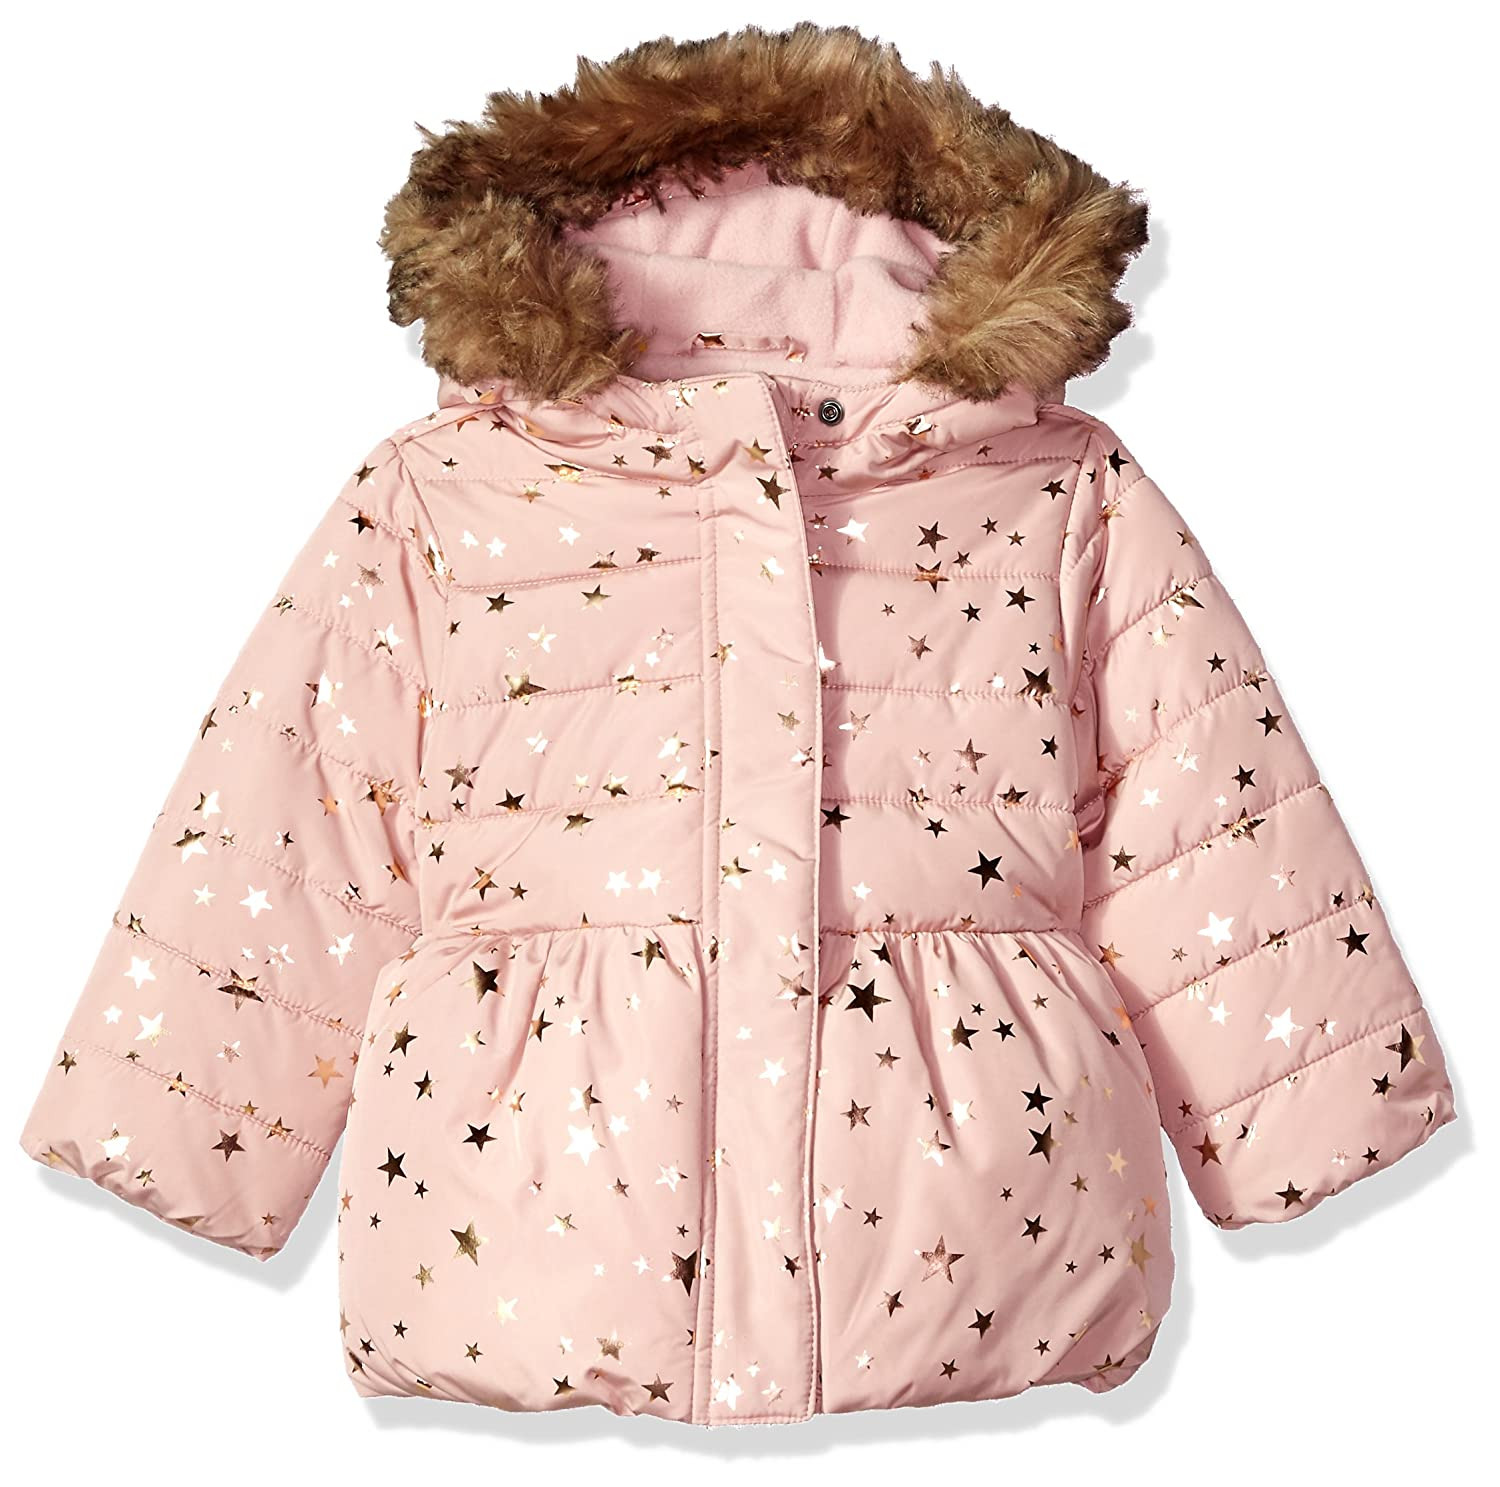 The Children's Place Baby Girls' Winter Jacket